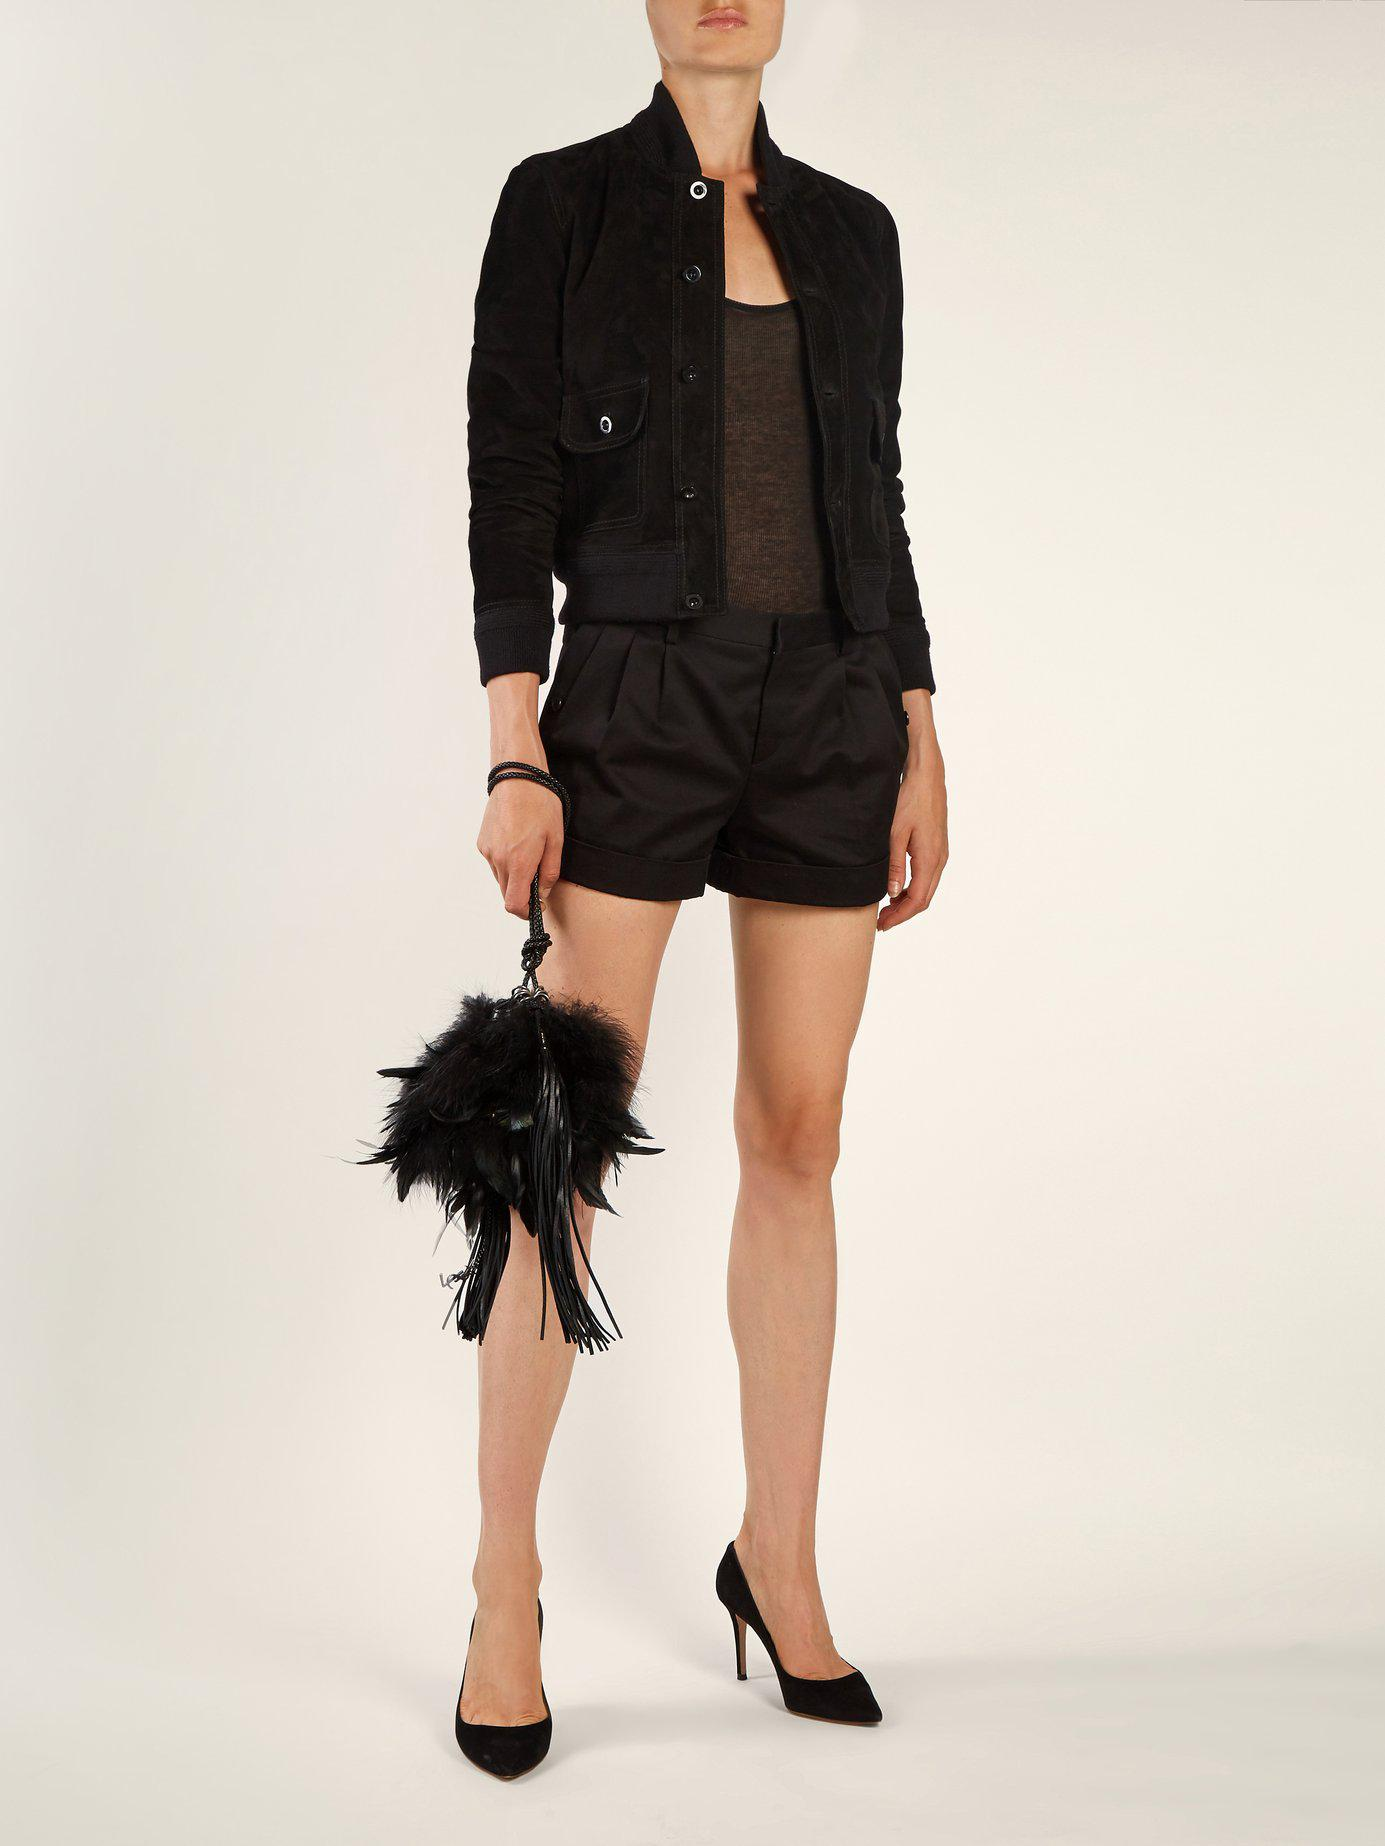 Lyst - Saint Laurent Mansour Feather Embellished Clutch in Black a65ccc44bfa0d